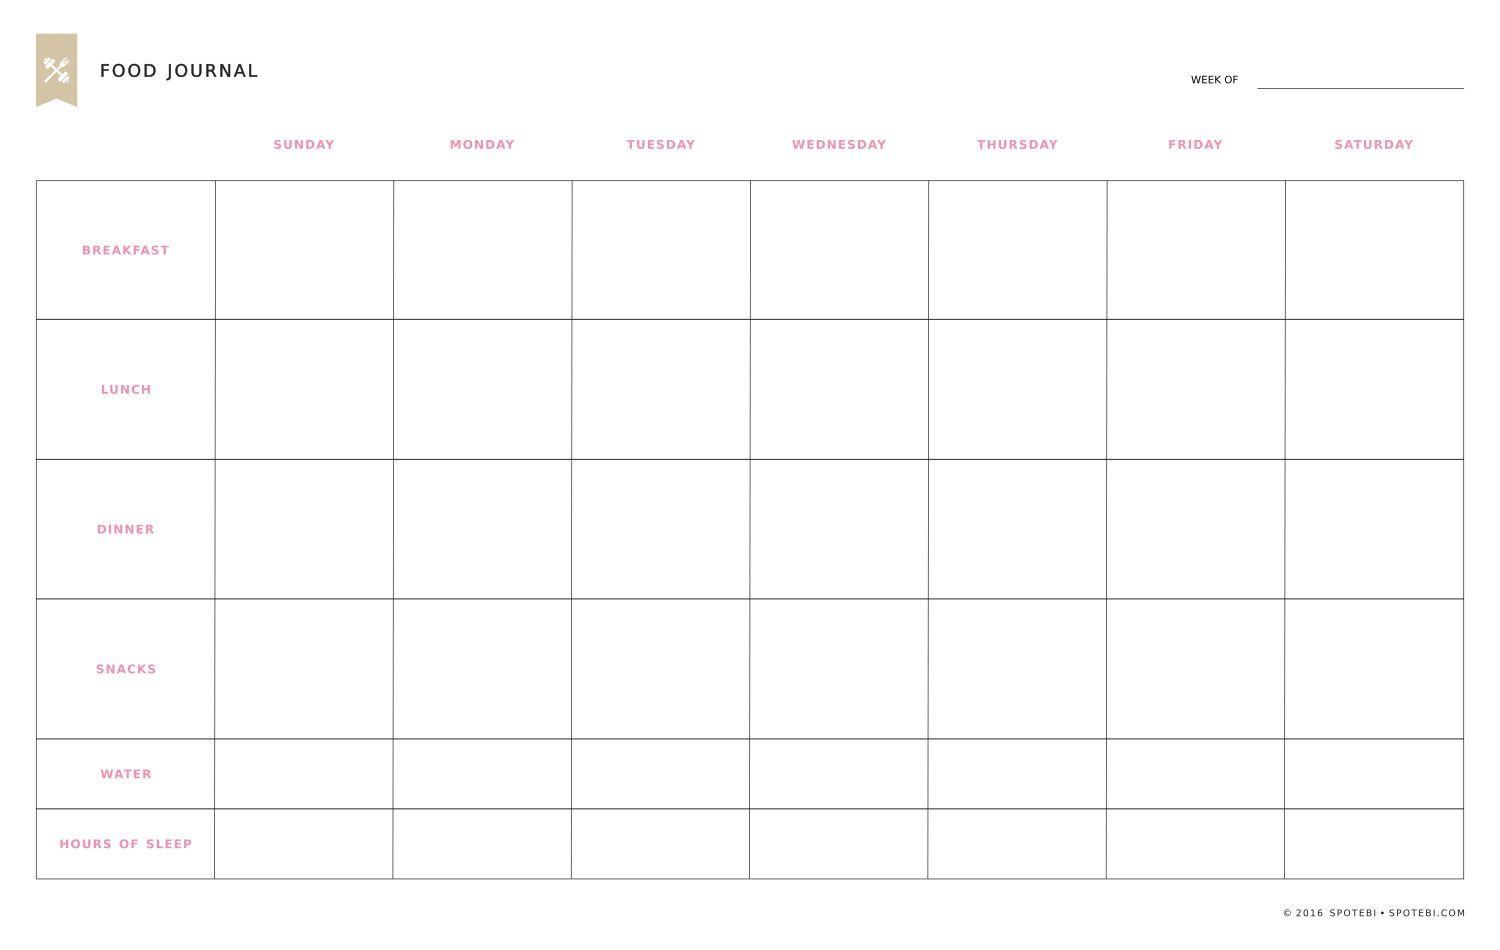 Print Our Free Food Diary Template Track Your Eating Habits Thoughts Feelings And